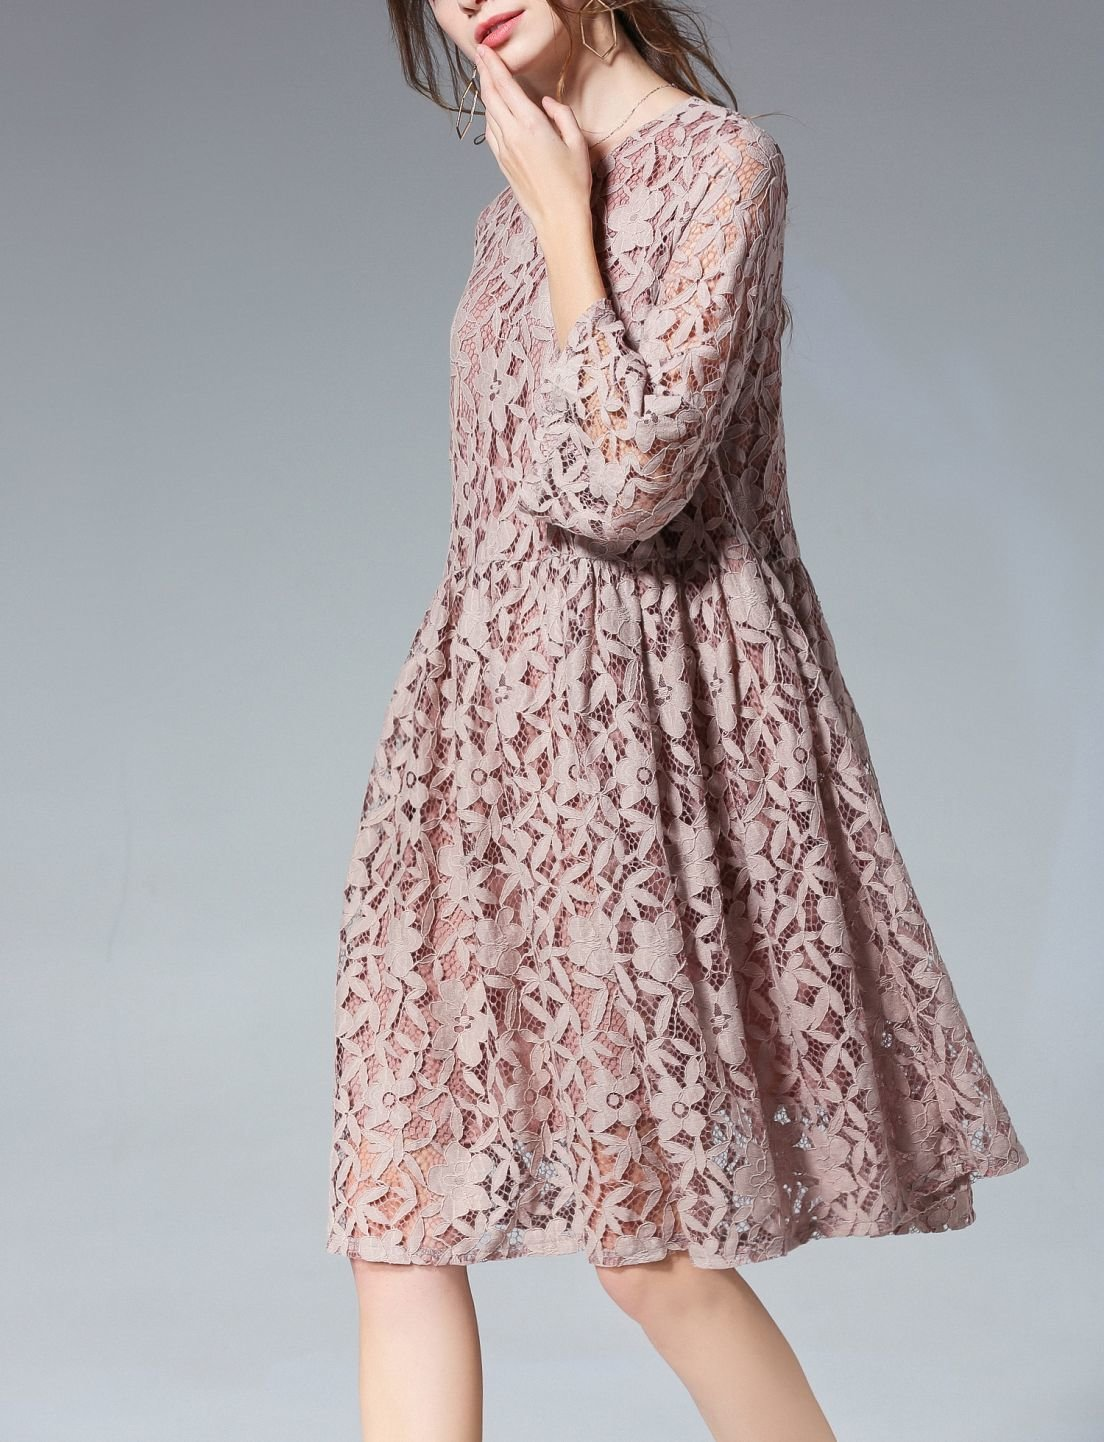 Plus Size Formal Dress of High Quality Lace